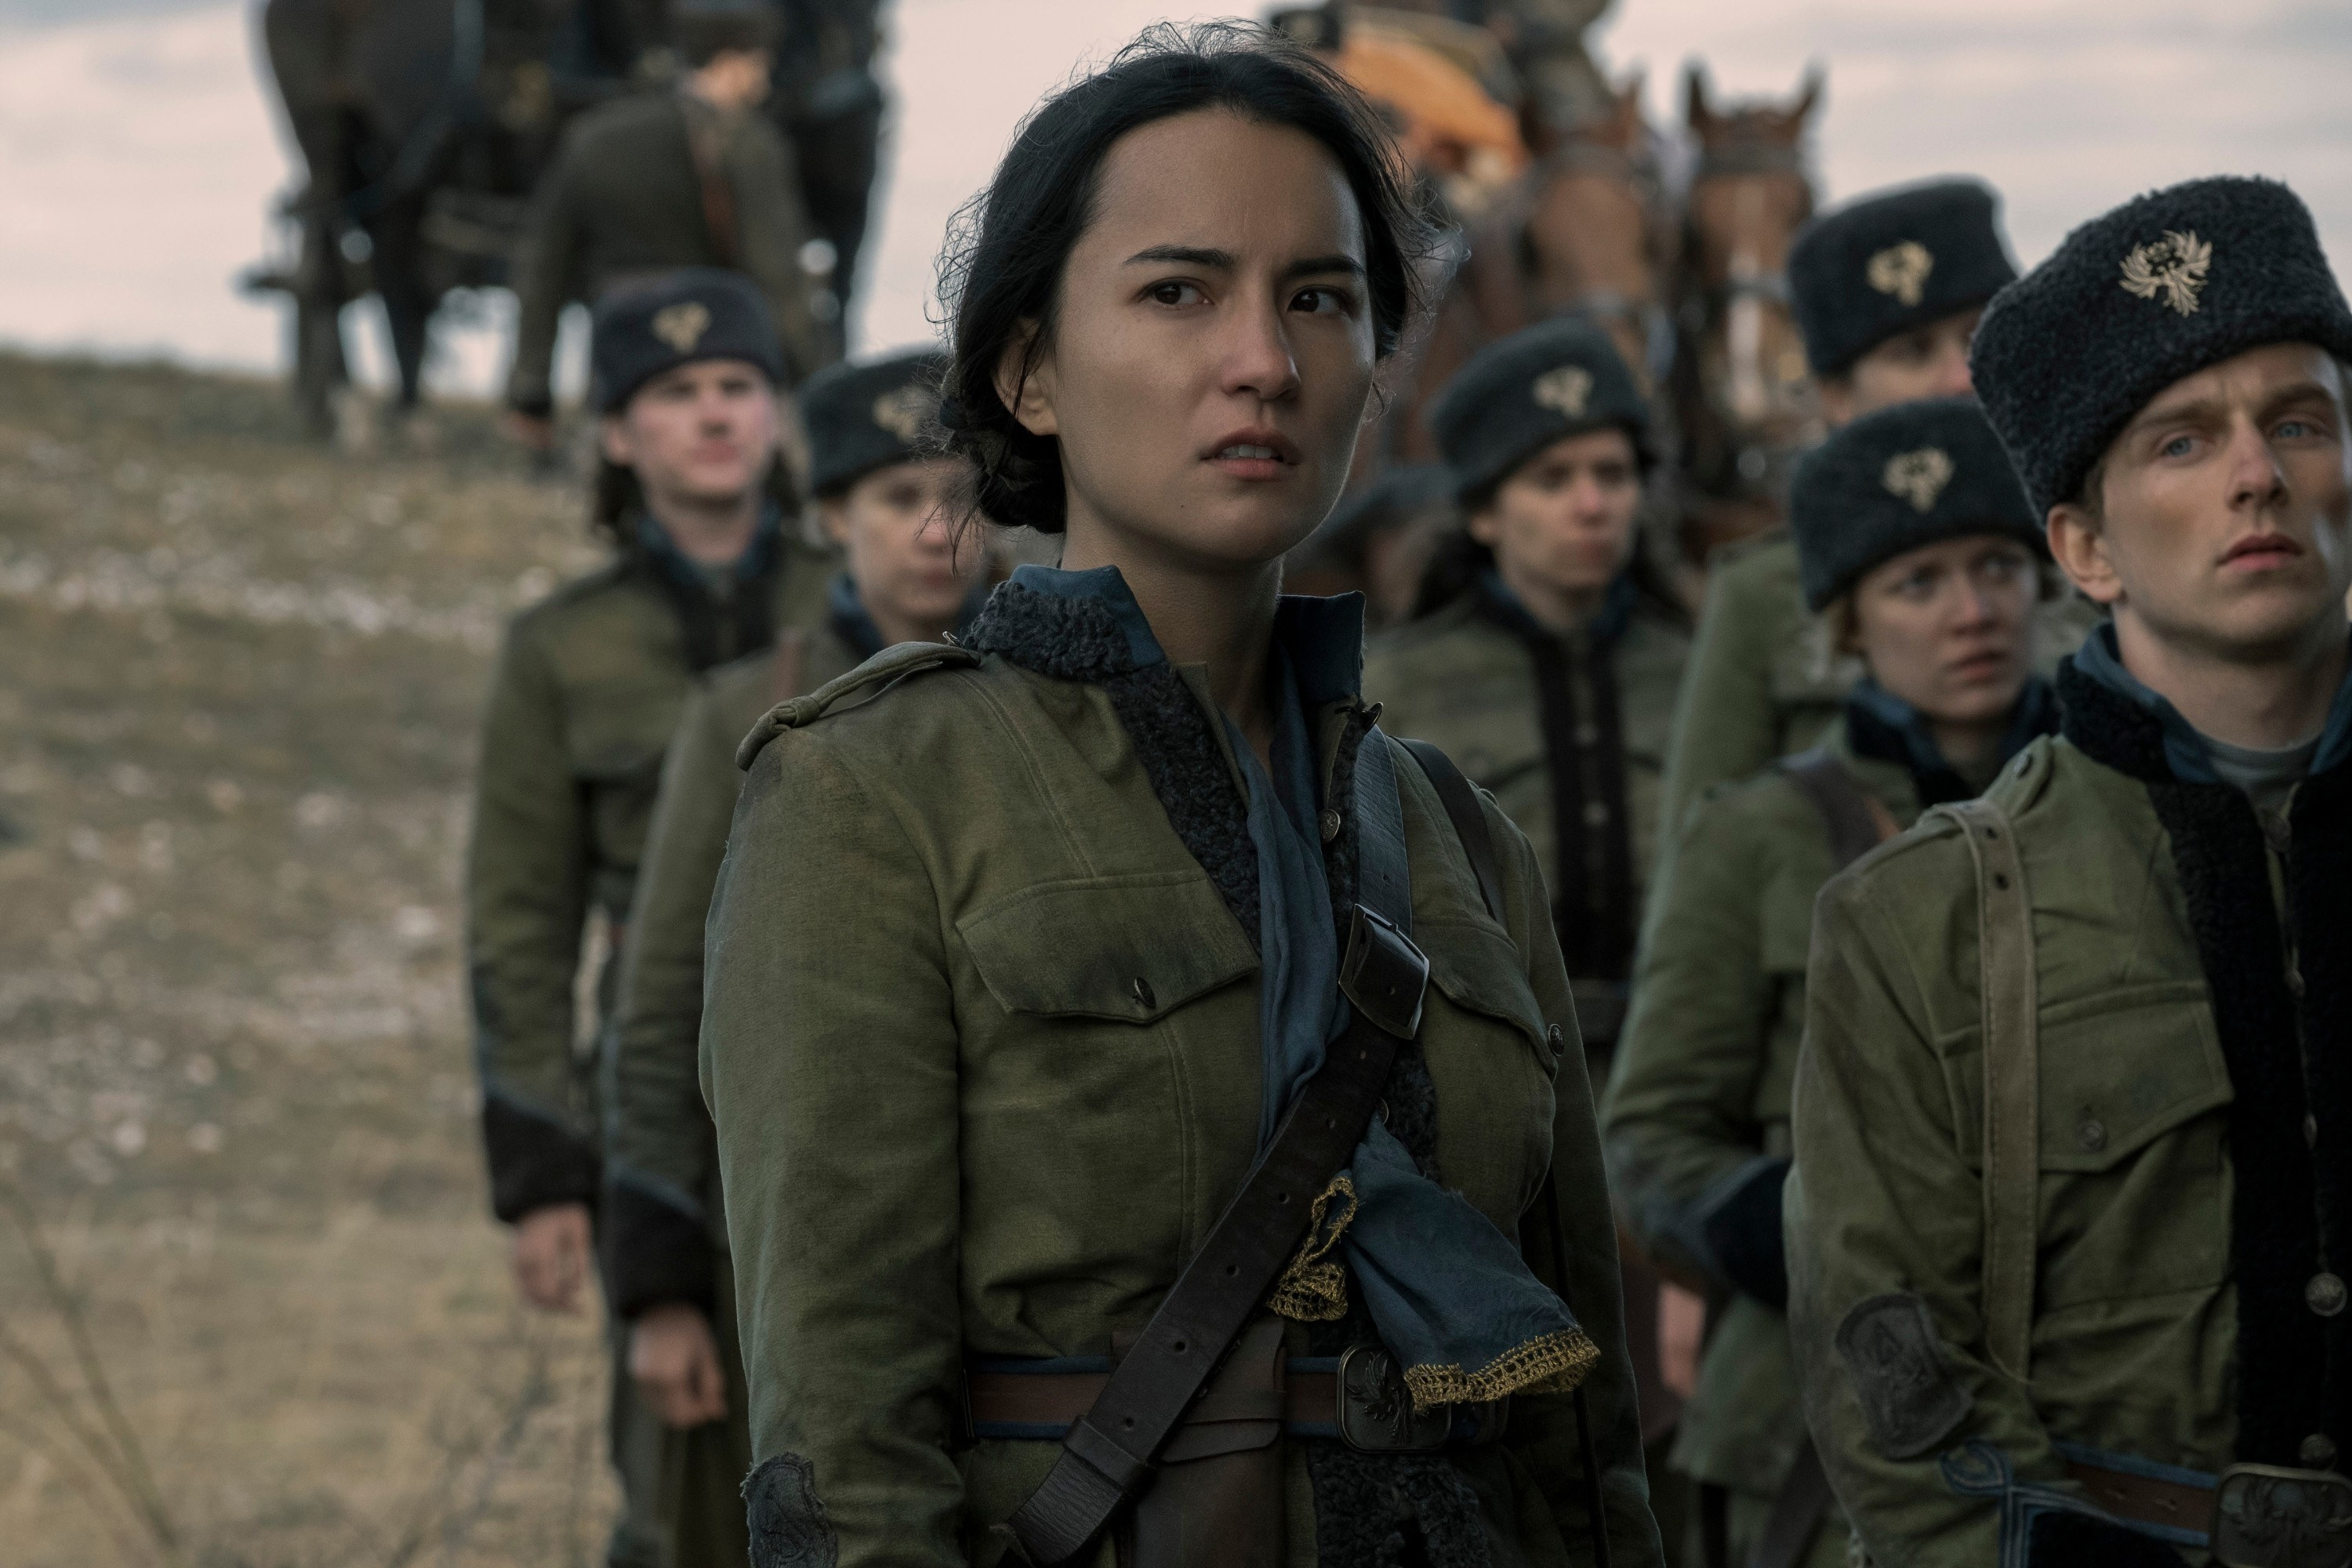 Alina wearing a jacket and standing with other soldiers